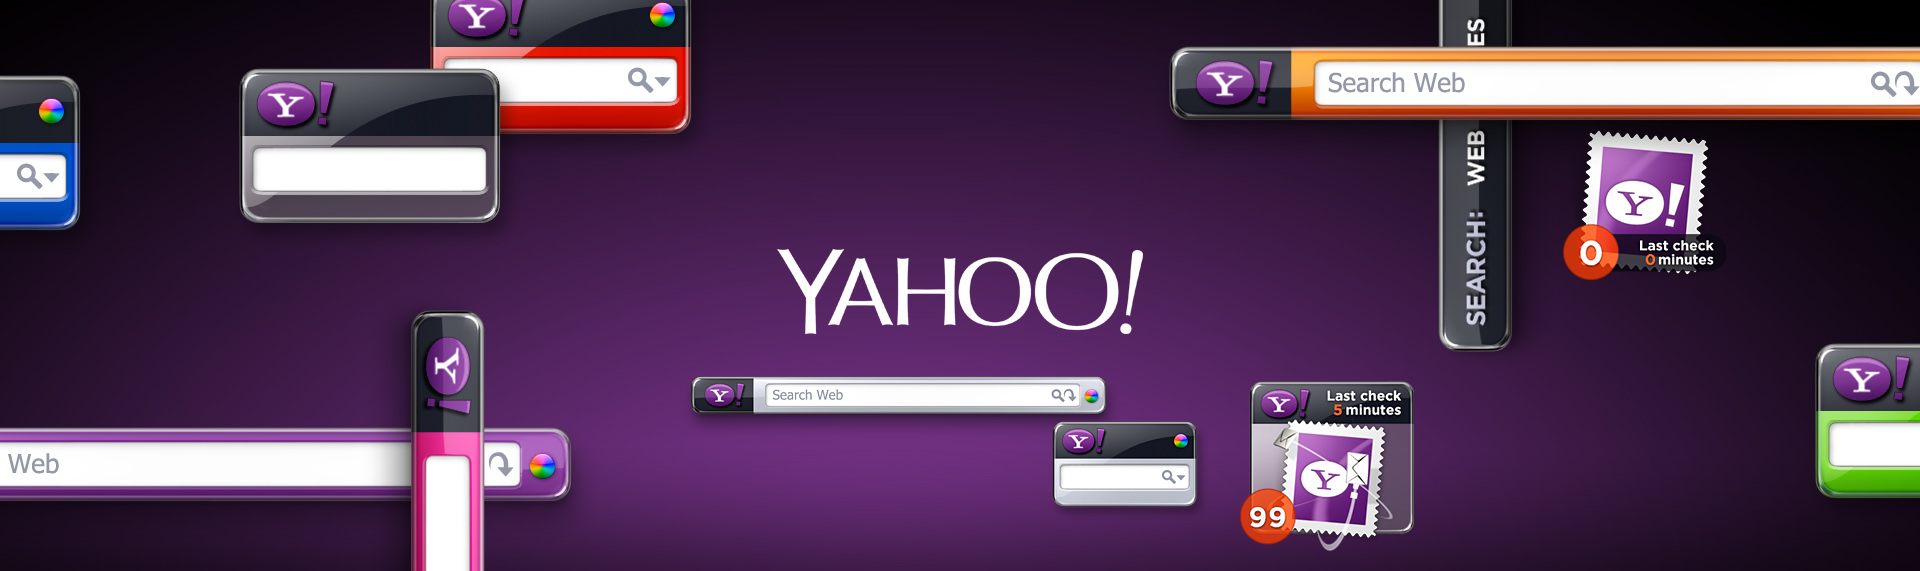 """Yahoo! Search & Email Gadget  Client: Yahoo!  Yahoo!, Inc. joined forces with The Skins Factory to design & develop their Yahoo! Search Gadget. With a hyper-glossy dual-acrylic styling (color injected into a virtual, clear acrylic base), animations featuring realistic motion blurs & an exciting color palette, this dynamic gadget """"flips"""" so the user can use both sides of this virtual device. The gadget comes in 2 distinct modes - the robust desktop & compact Sidebar mode in 8 colors."""